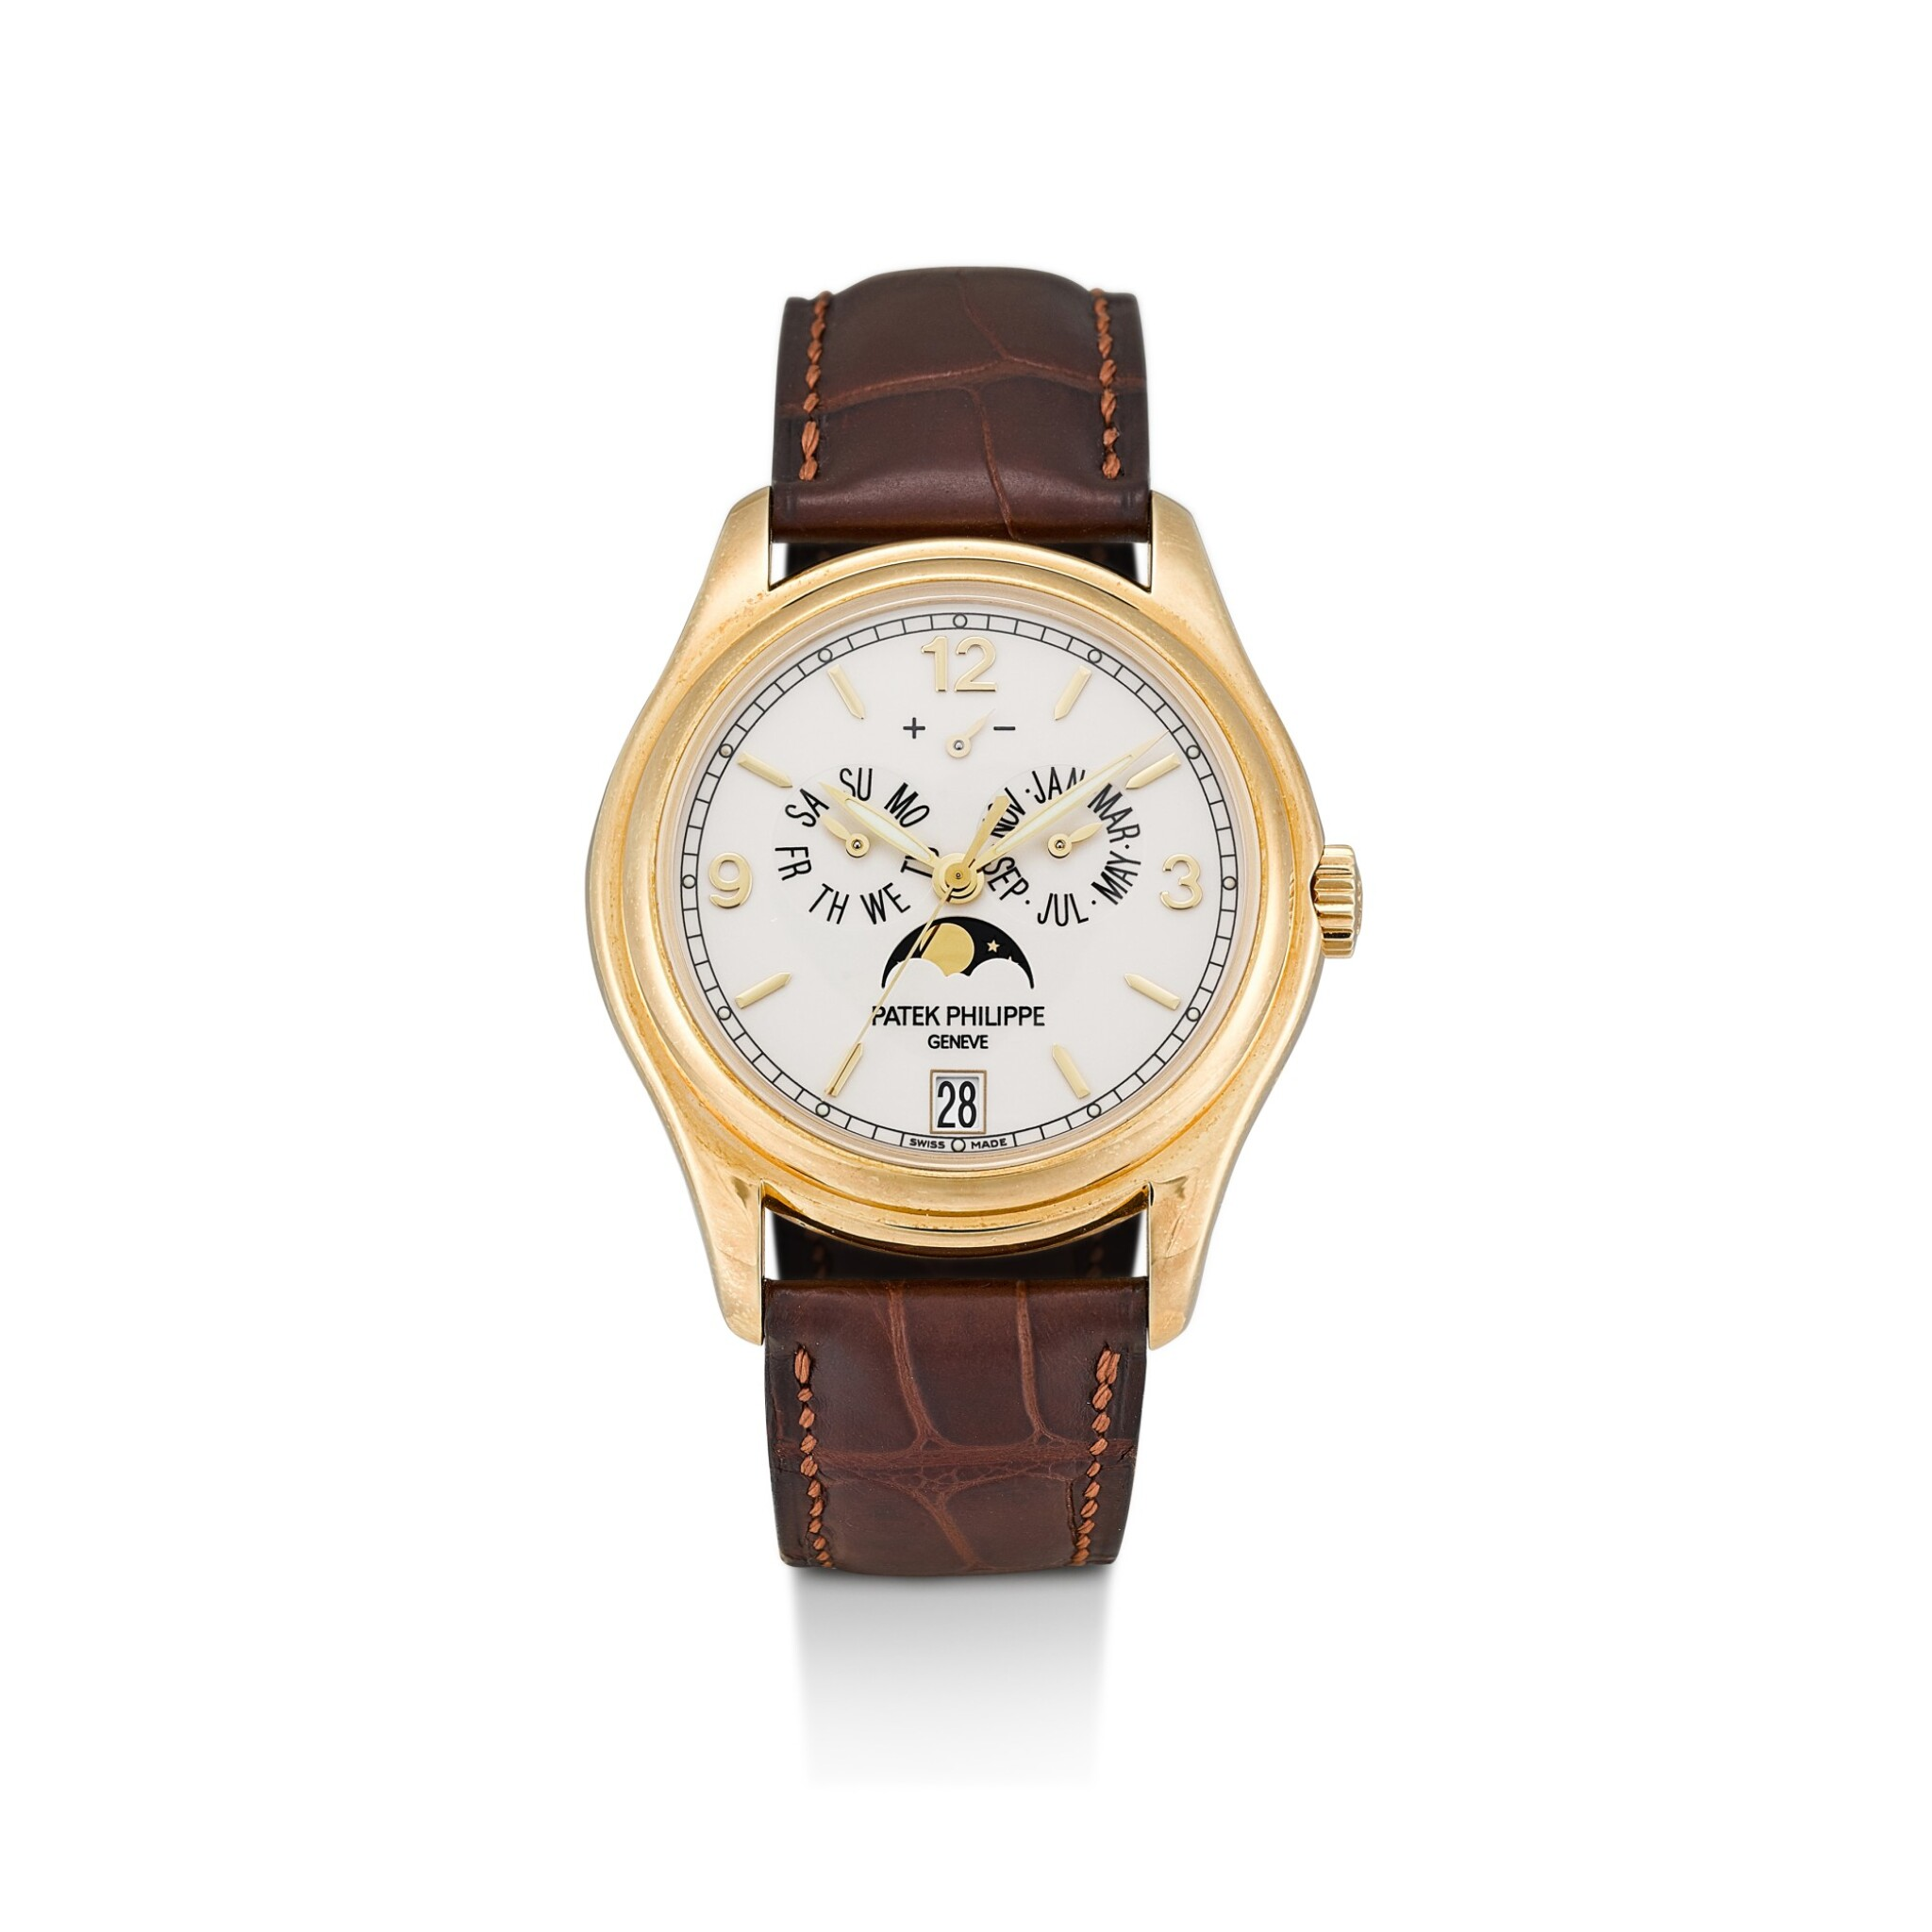 View full screen - View 1 of Lot 8237. PATEK PHILIPPE | REFERENCE 5146   A YELLOW GOLD ANNUAL CALENDAR WRISTWATCH WITH MOON PHASES AND POWER RESERVE INDICATION, CIRCA 2008.